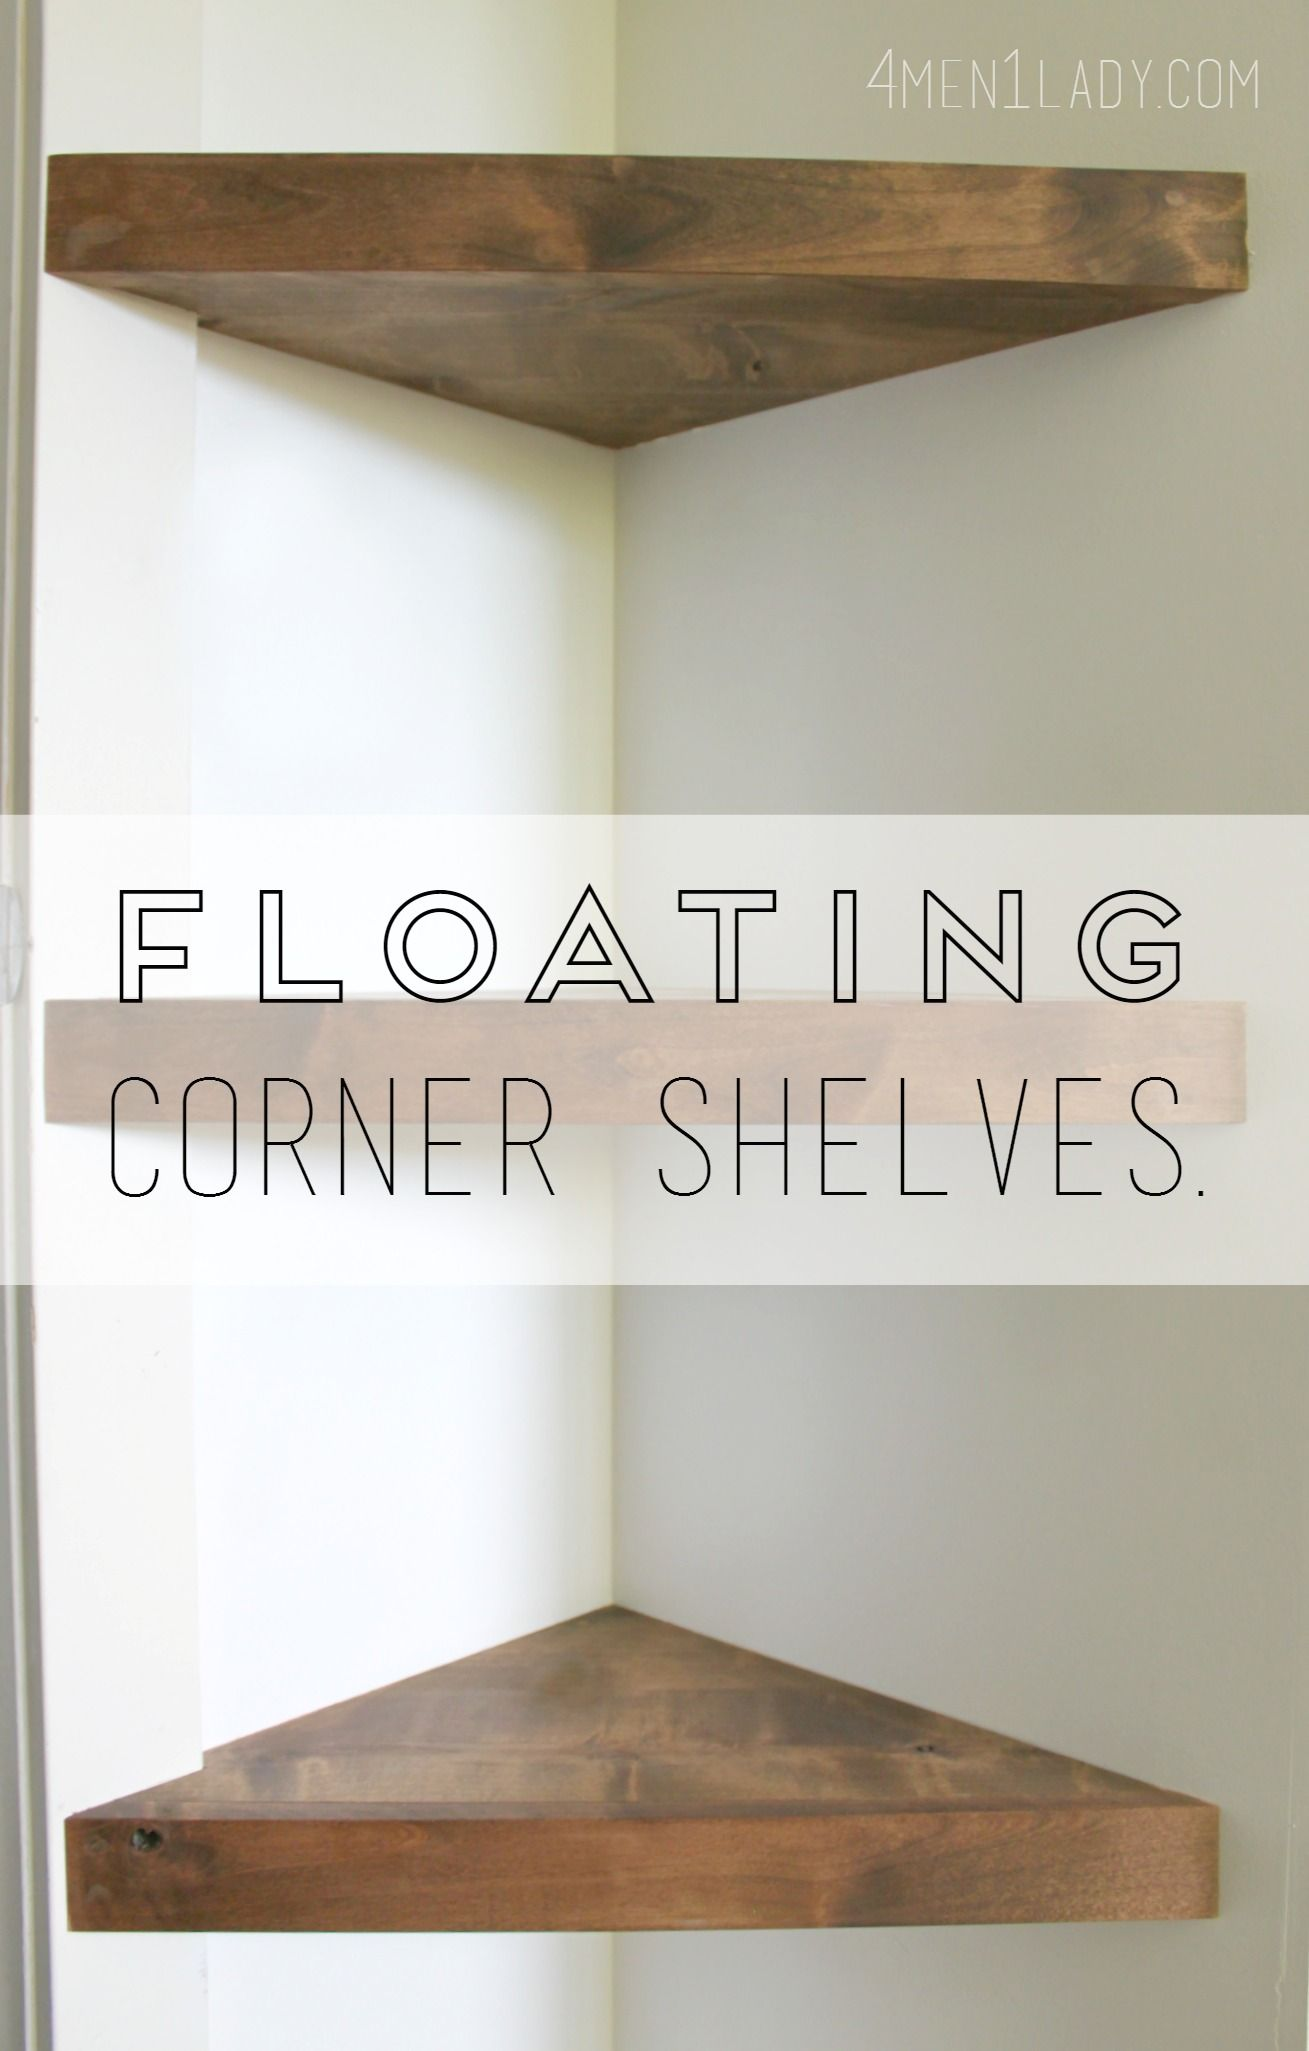 37 Brilliantly Creative Diy Shelving Ideas Floating Corner Shelves Shelves Floating Shelves